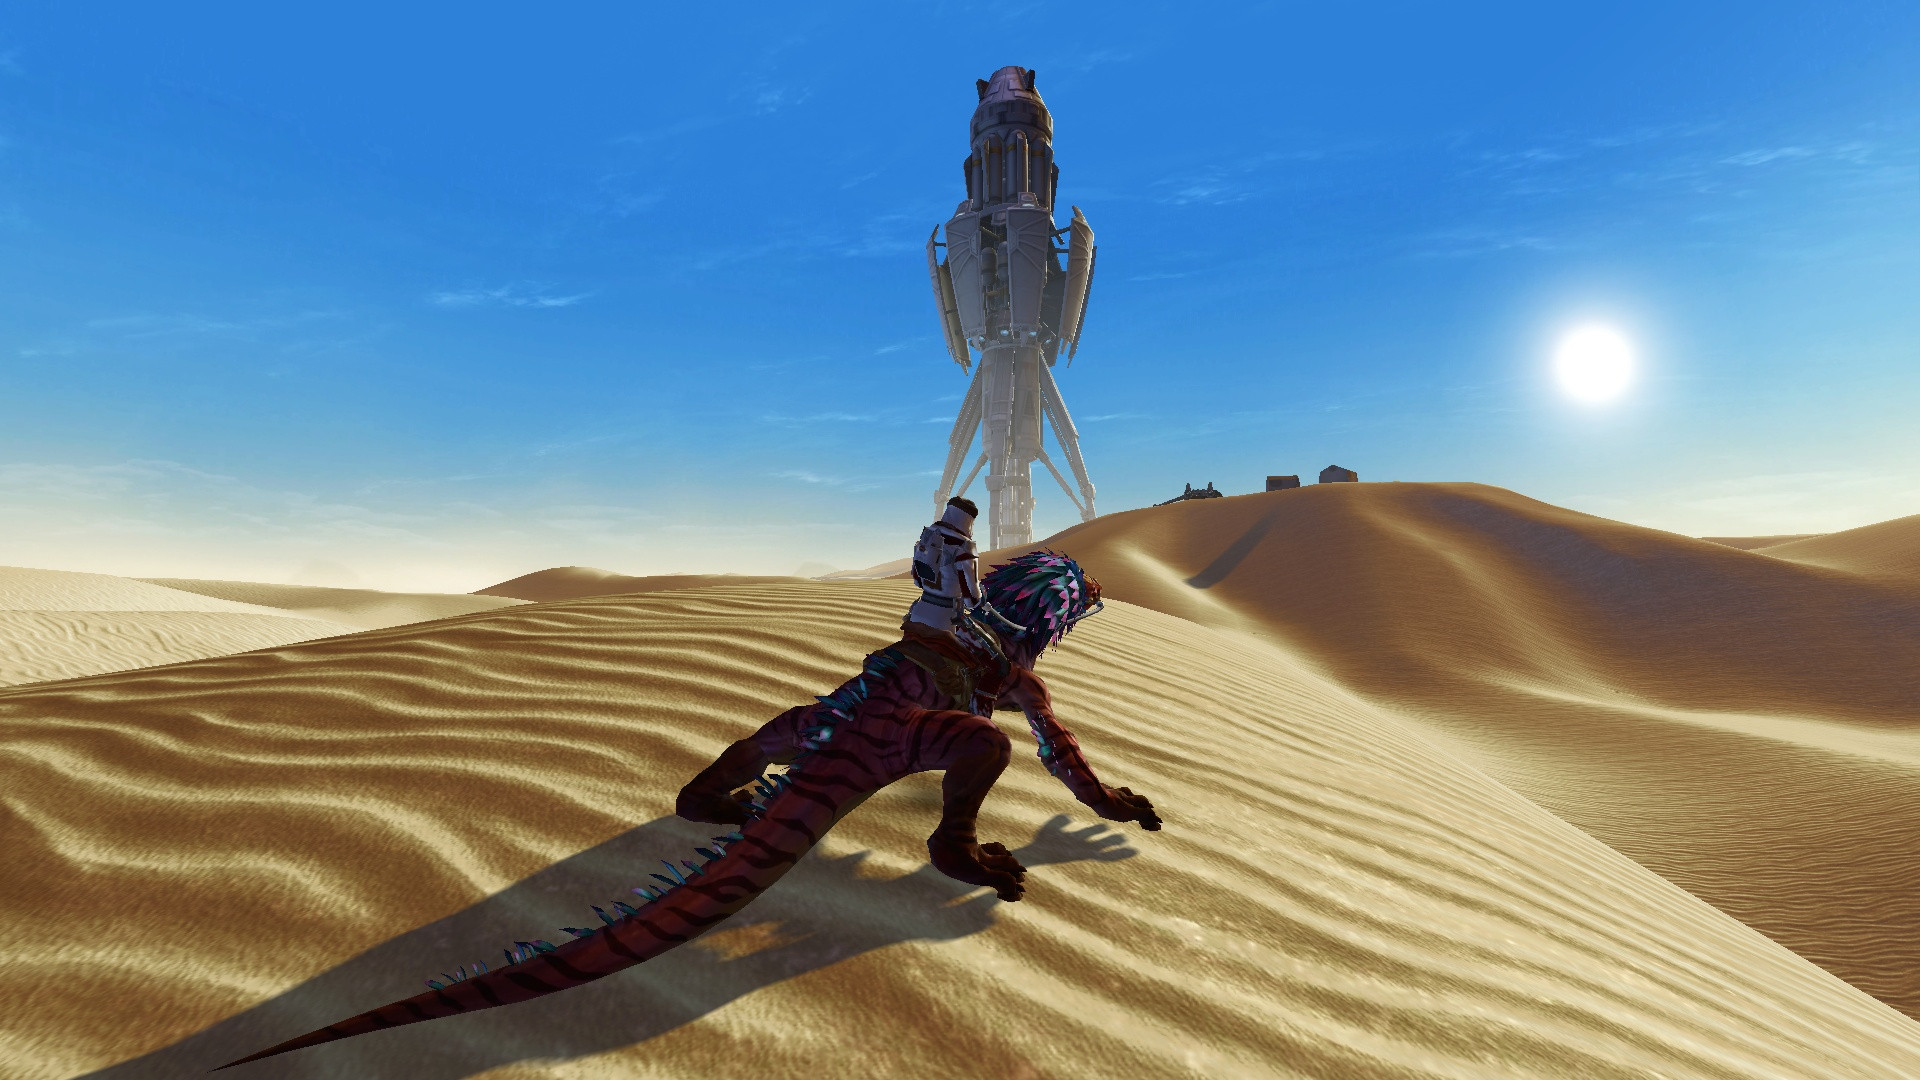 Should SWTOR be transitioned to Consoles